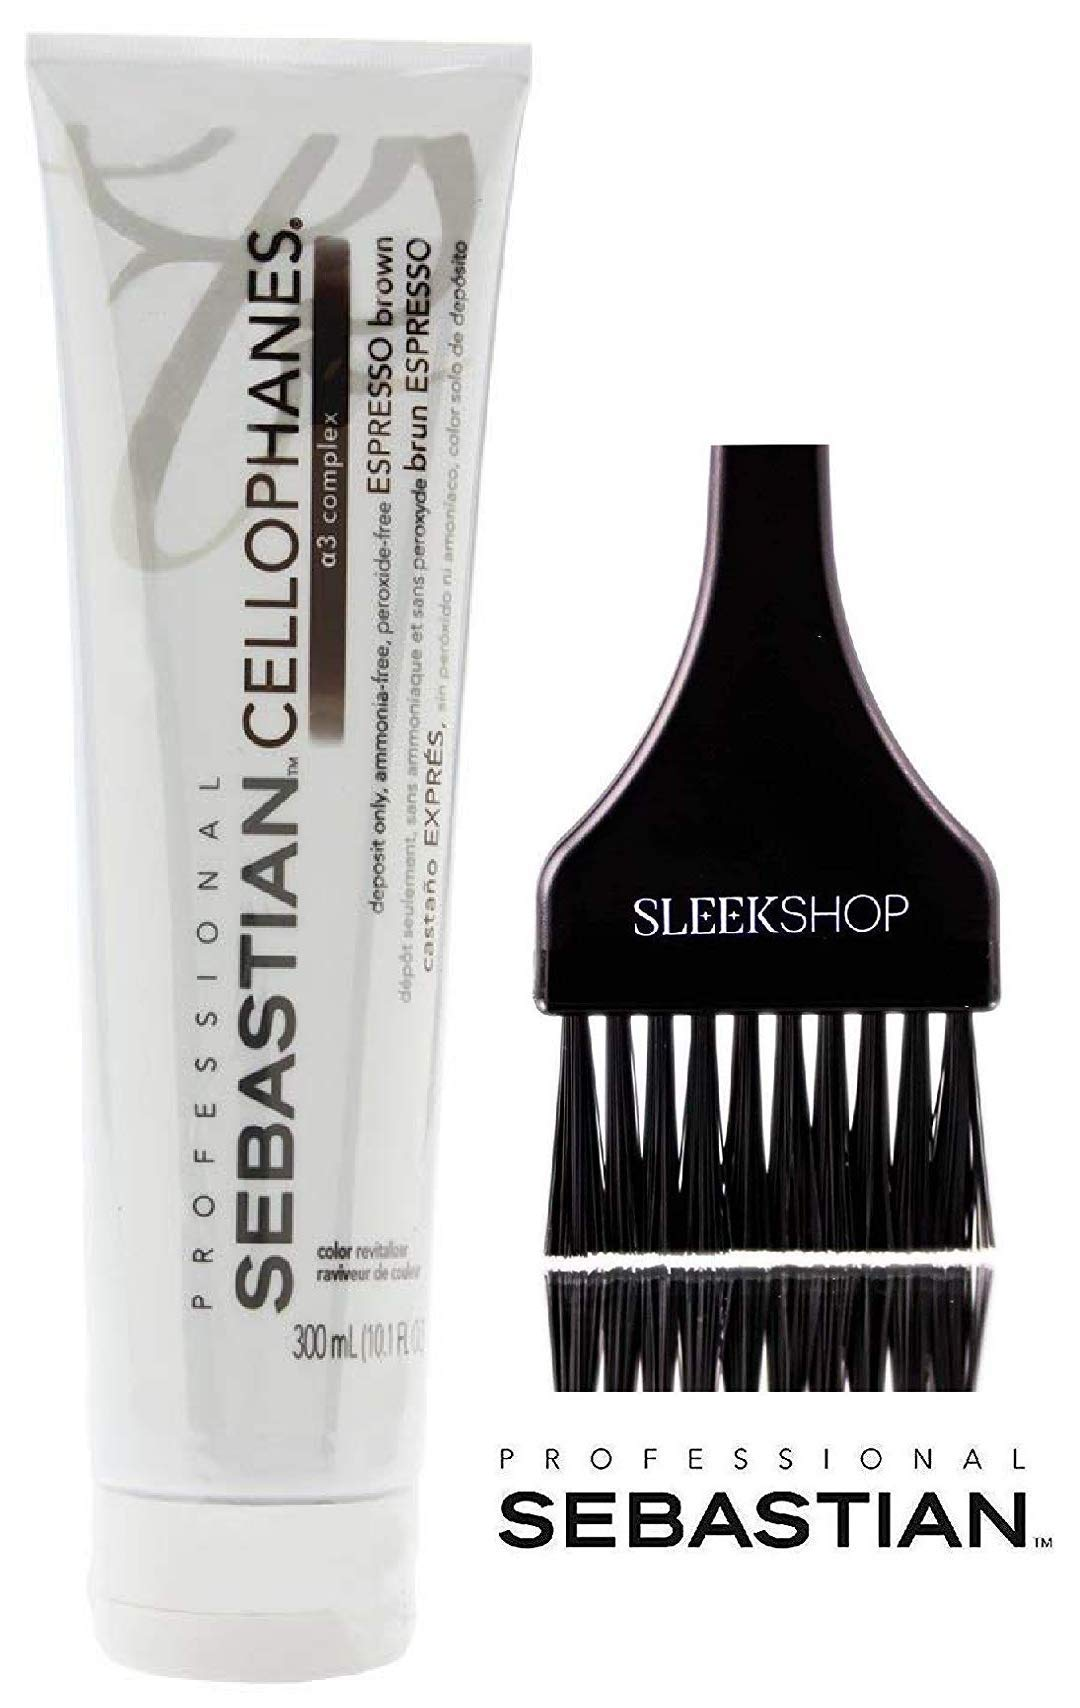 CELLOPHANES ESPRESSO BROWN, Color Revitalizer with A3 Complex, Deposit Only, Ammonia-Free, Peroxide-Free (with Sleek Tint Applicator Brush) (ESPRESSO BROWN - 10.1 oz / 300 ml)